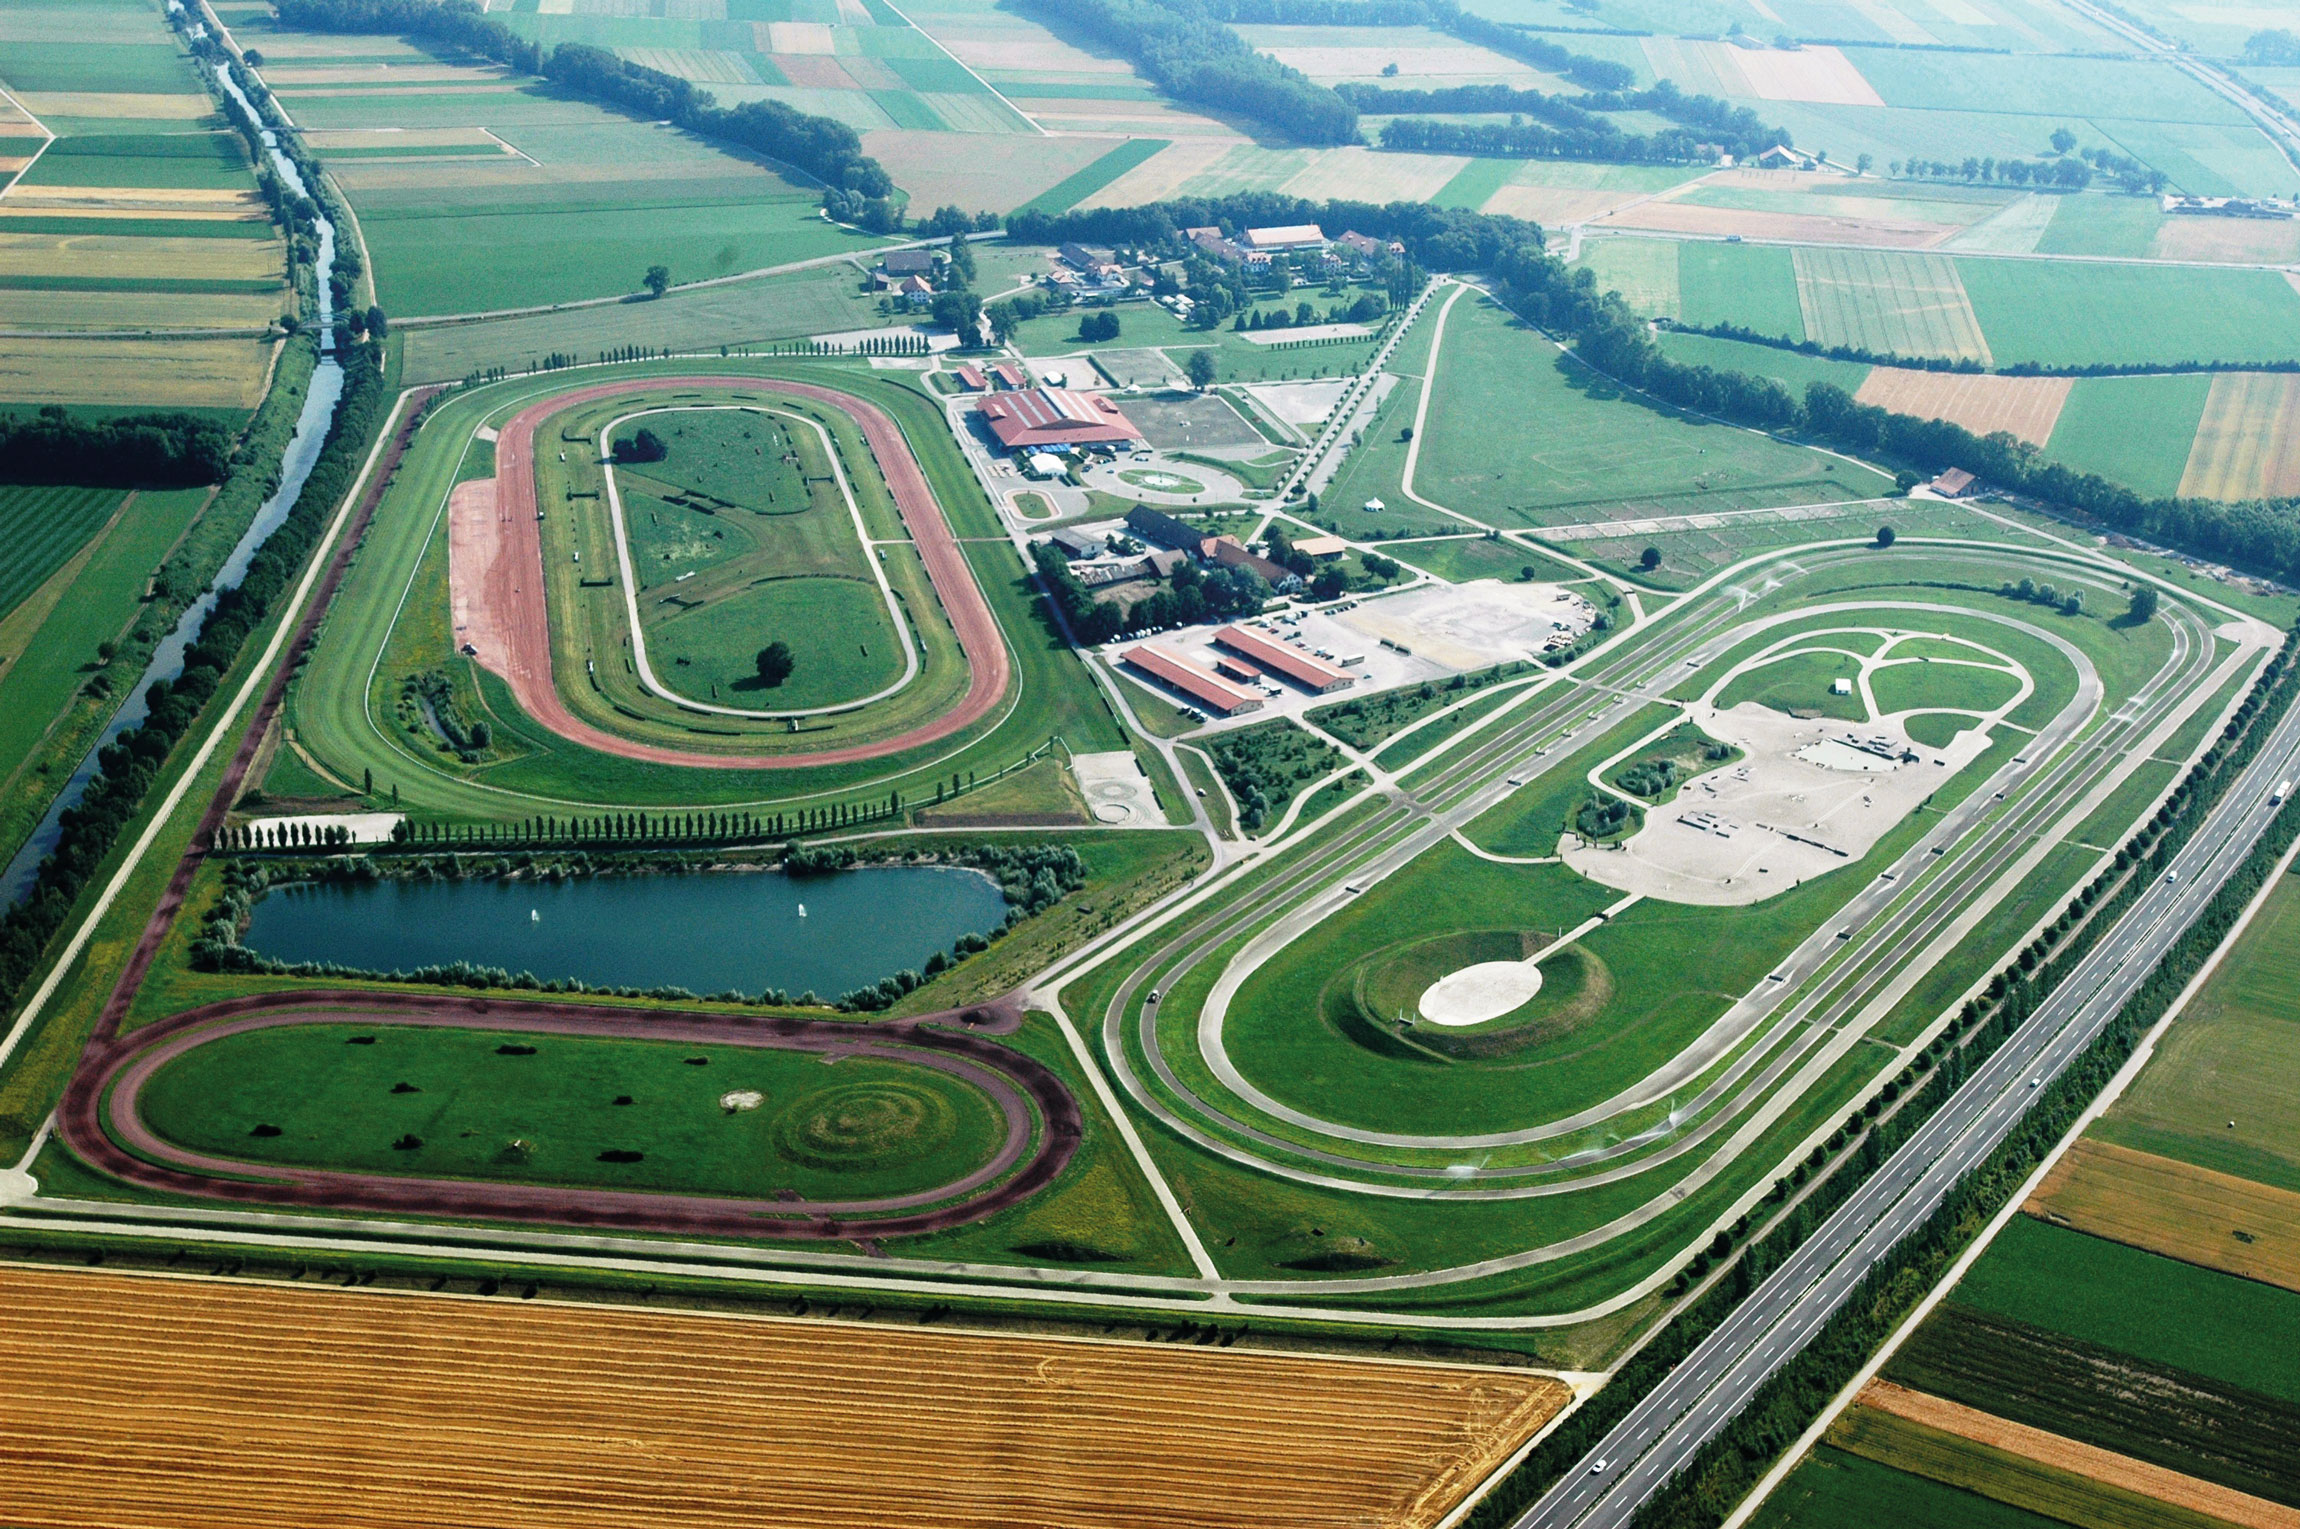 Europe's Best Eventers are Heading to Avenches